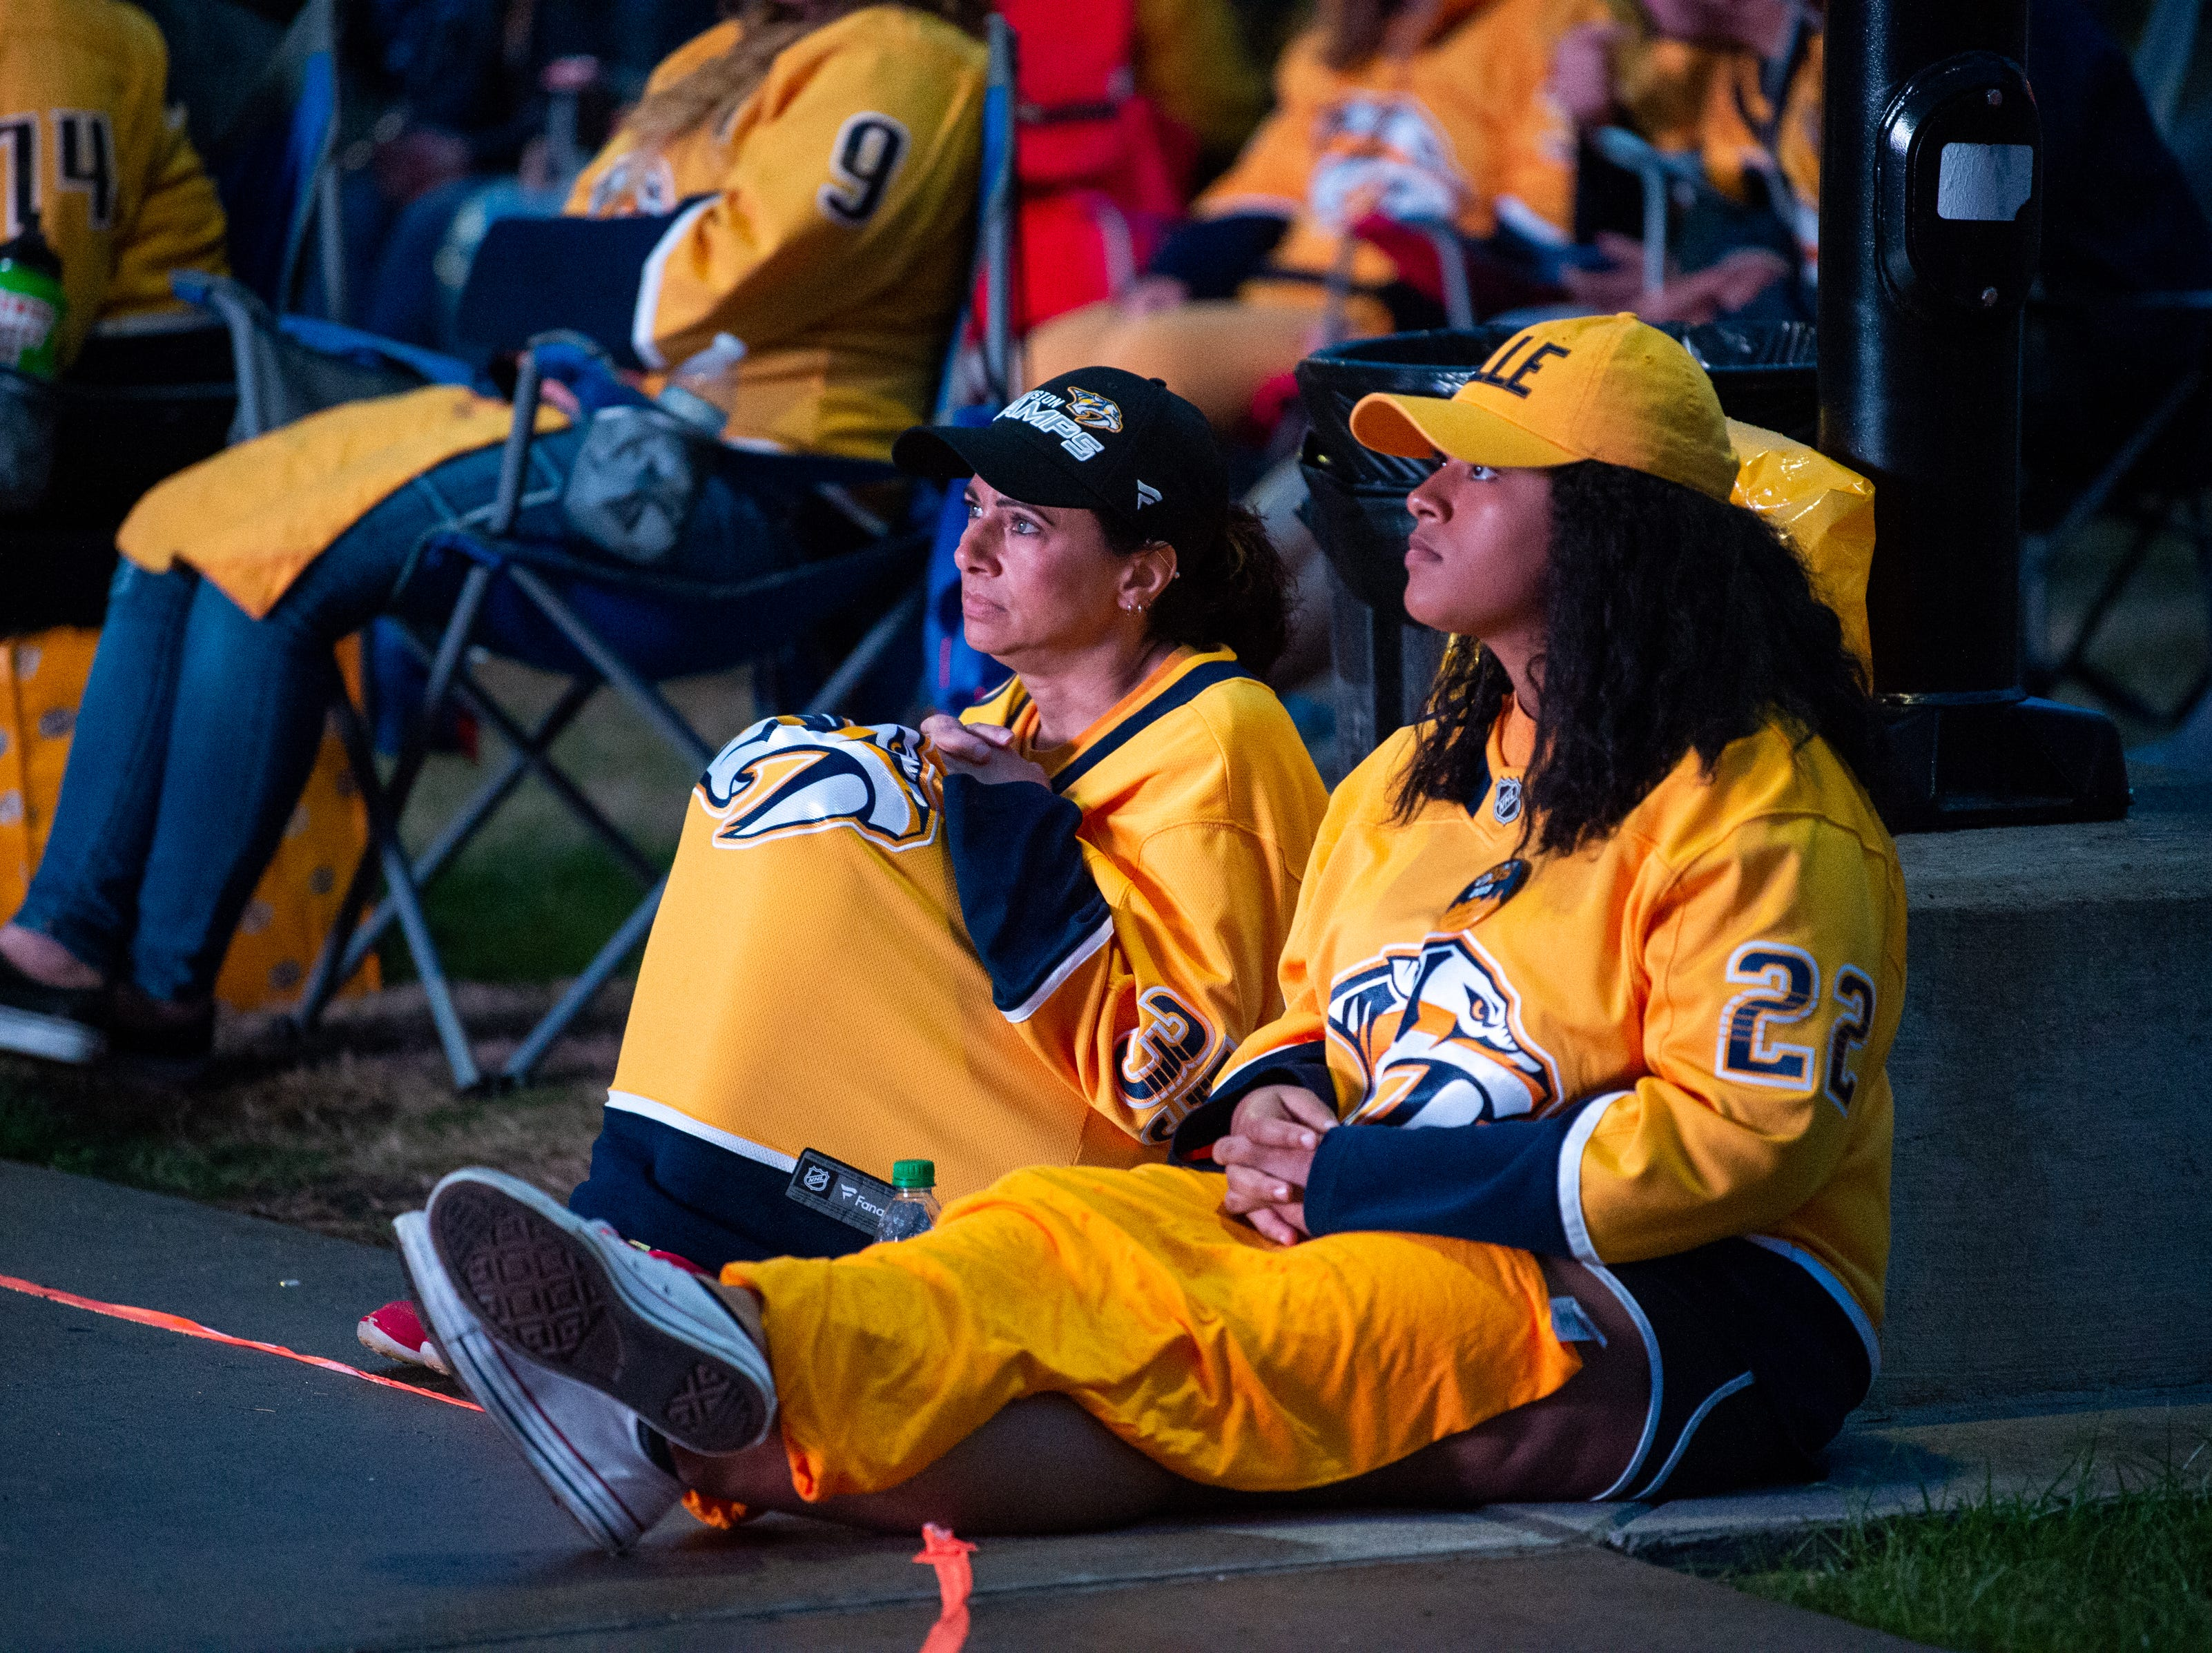 Fans watch the third period of the Nashville Predators game against the Dallas Stars at Preds Party in the Park at Walk of Fame Park Saturday, April 13, 2019, in Nashville, Tenn.